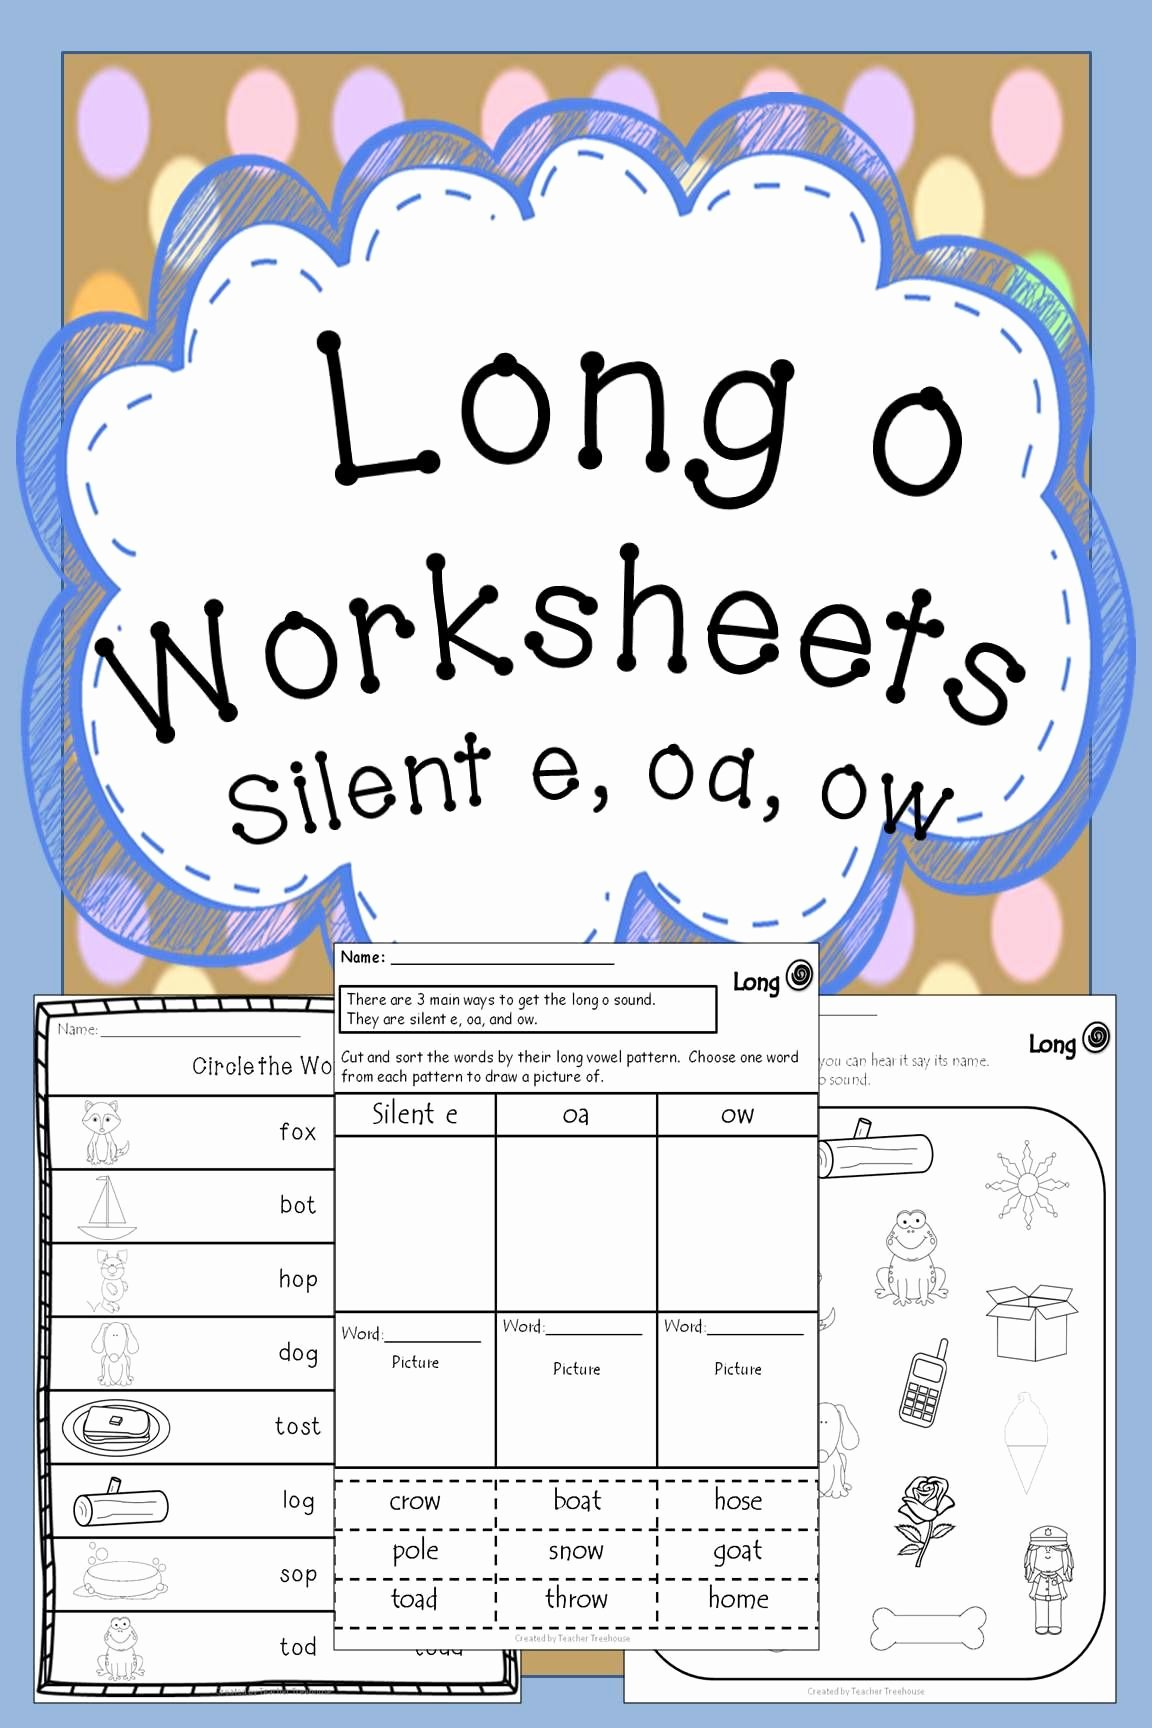 Long O Worksheets 2nd Grade top 10 Worksheets Practicing Mon Long O Spelling Patterns